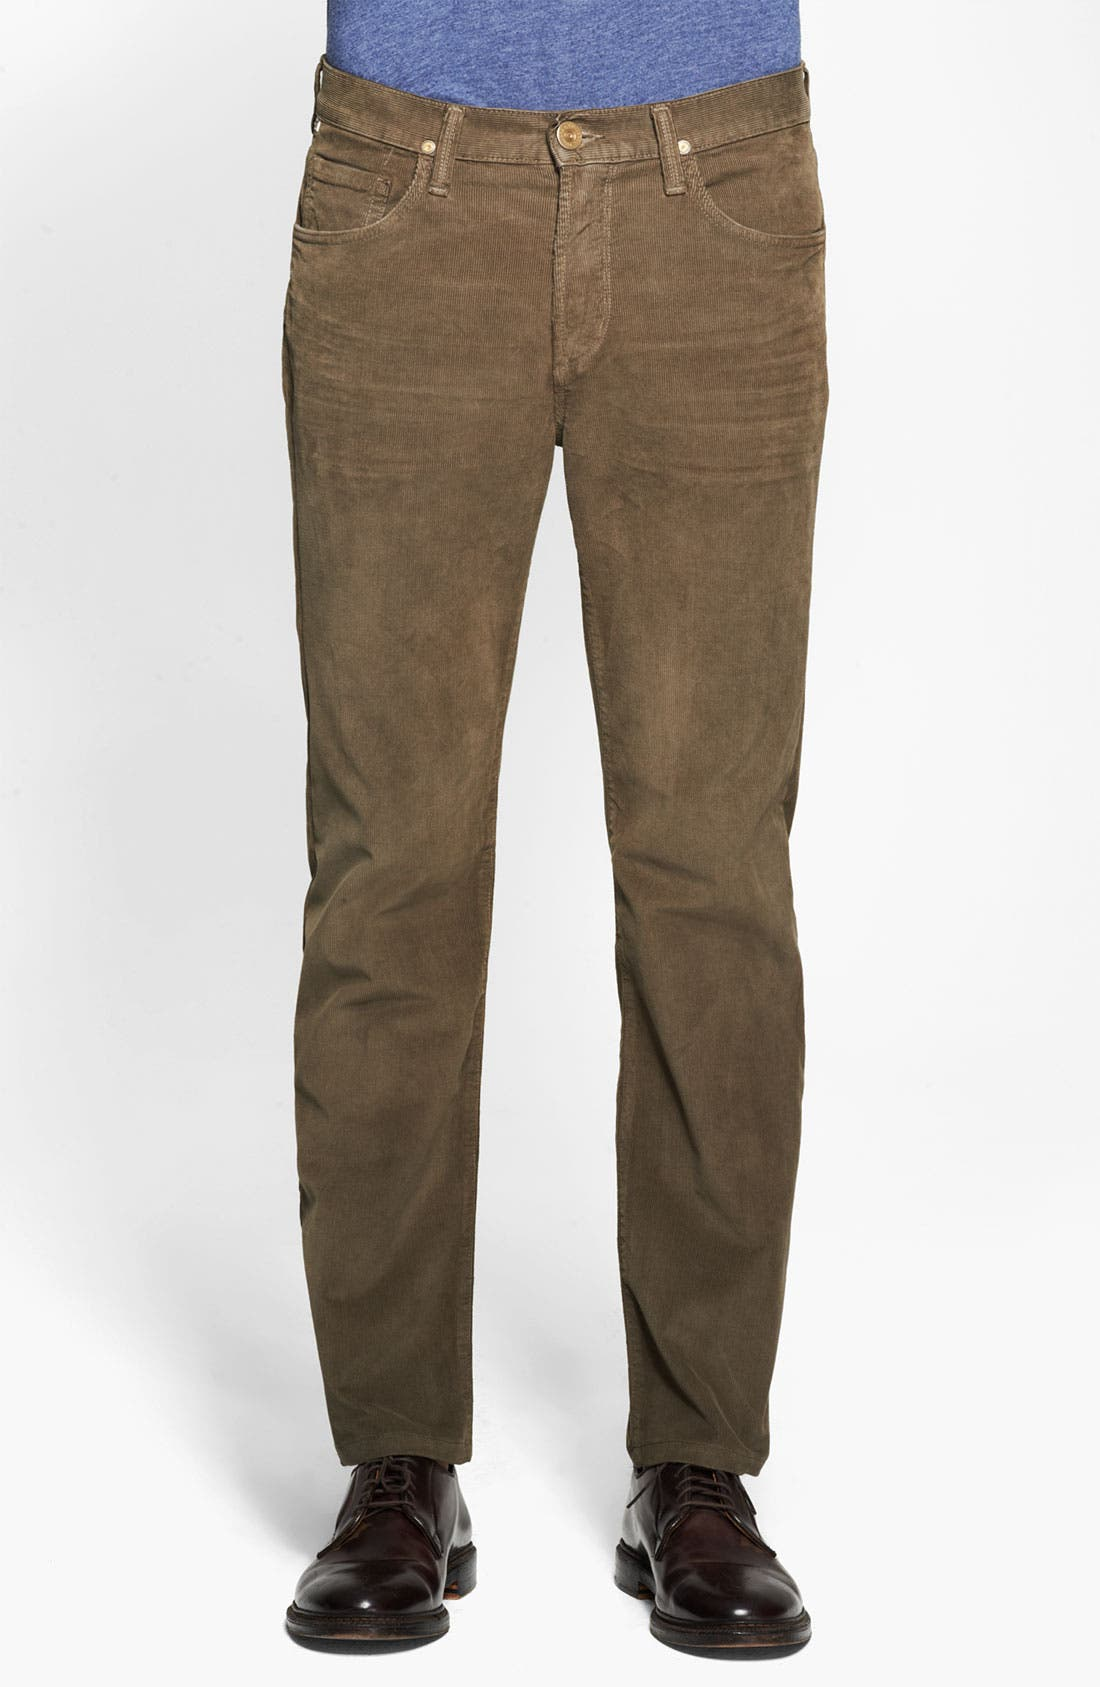 Alternate Image 1 Selected - Citizens of Humanity 'Sid' Straight Leg Corduroy Pants